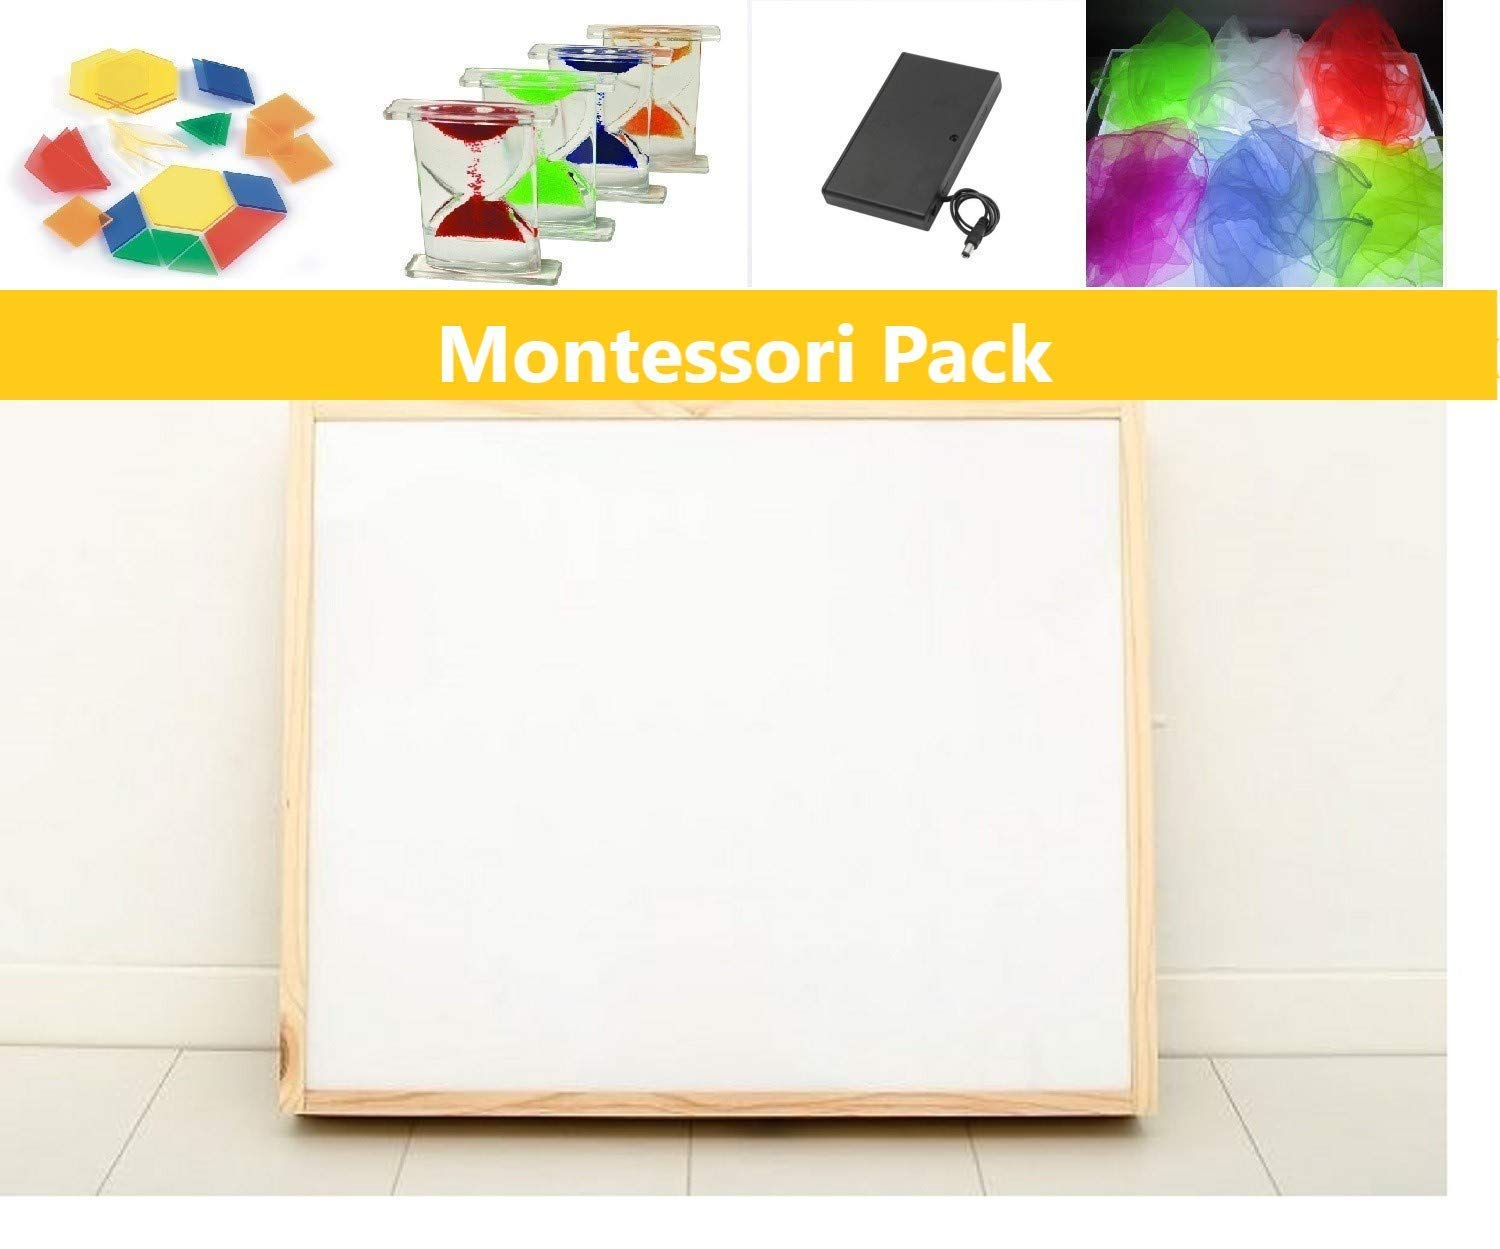 Pack caja de luz Montessori RGBW 50x60cm + materiales: Amazon.es ...